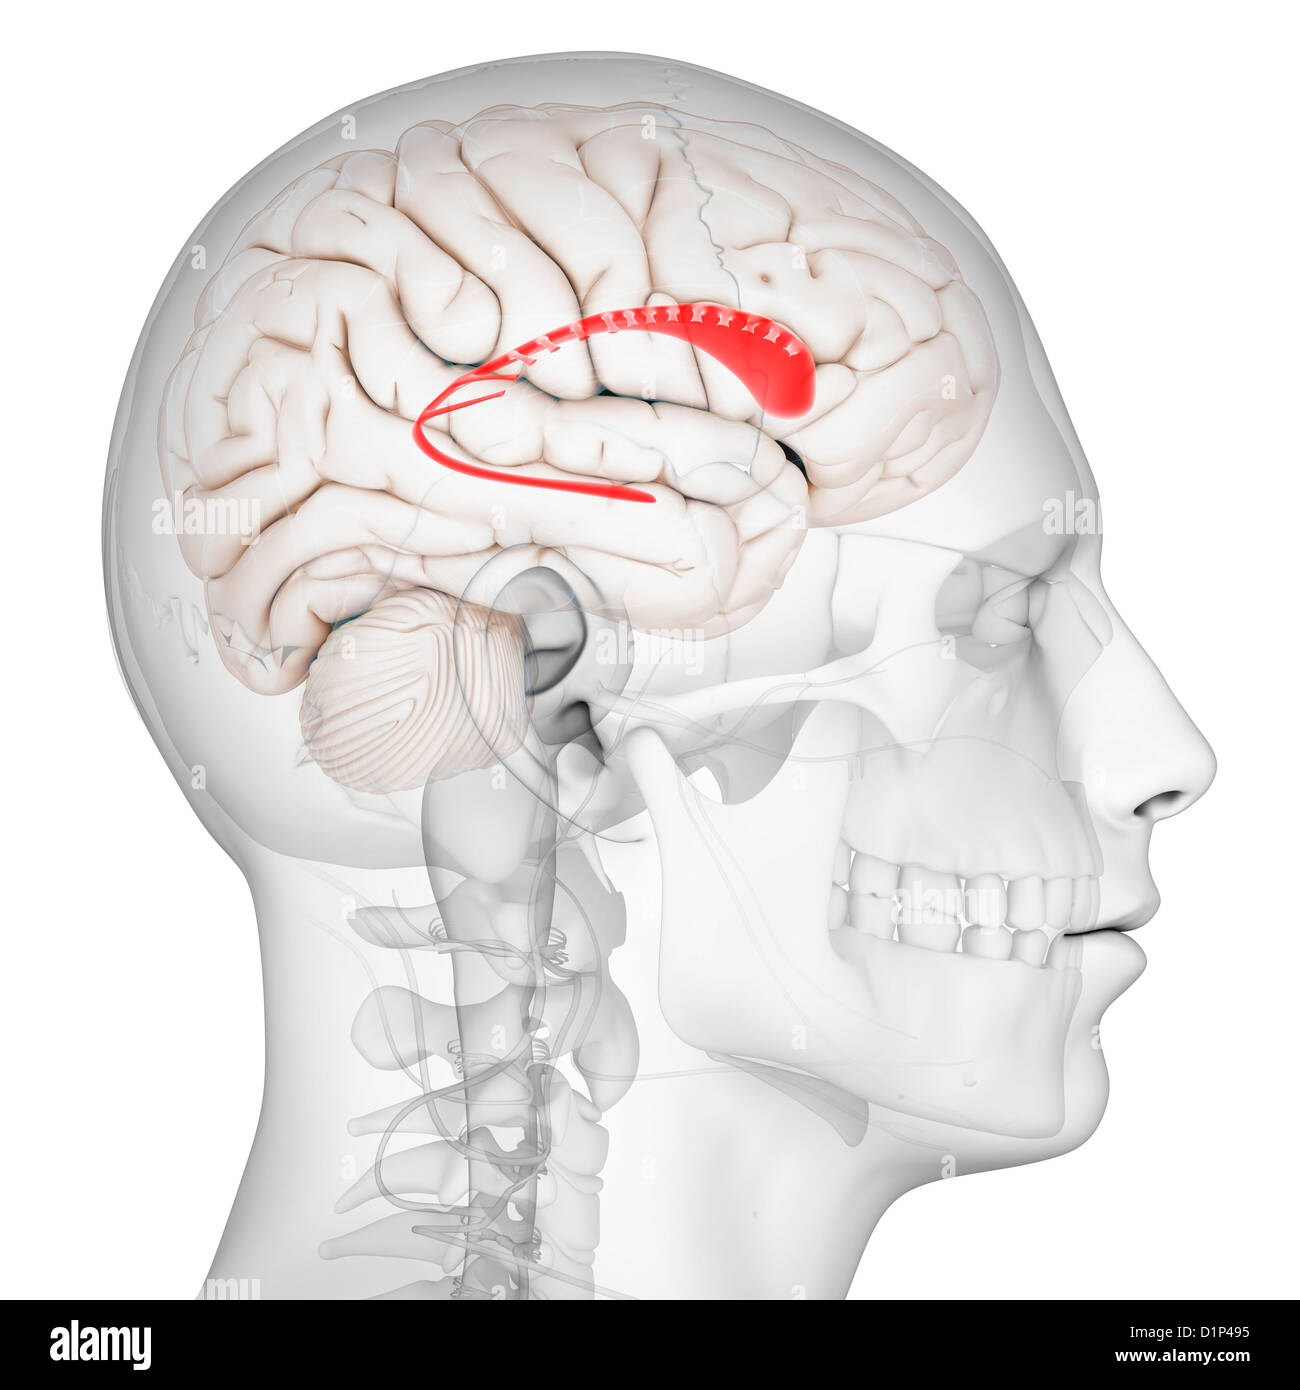 Human Brain Caudate Nucleus Stock Photos & Human Brain Caudate ...